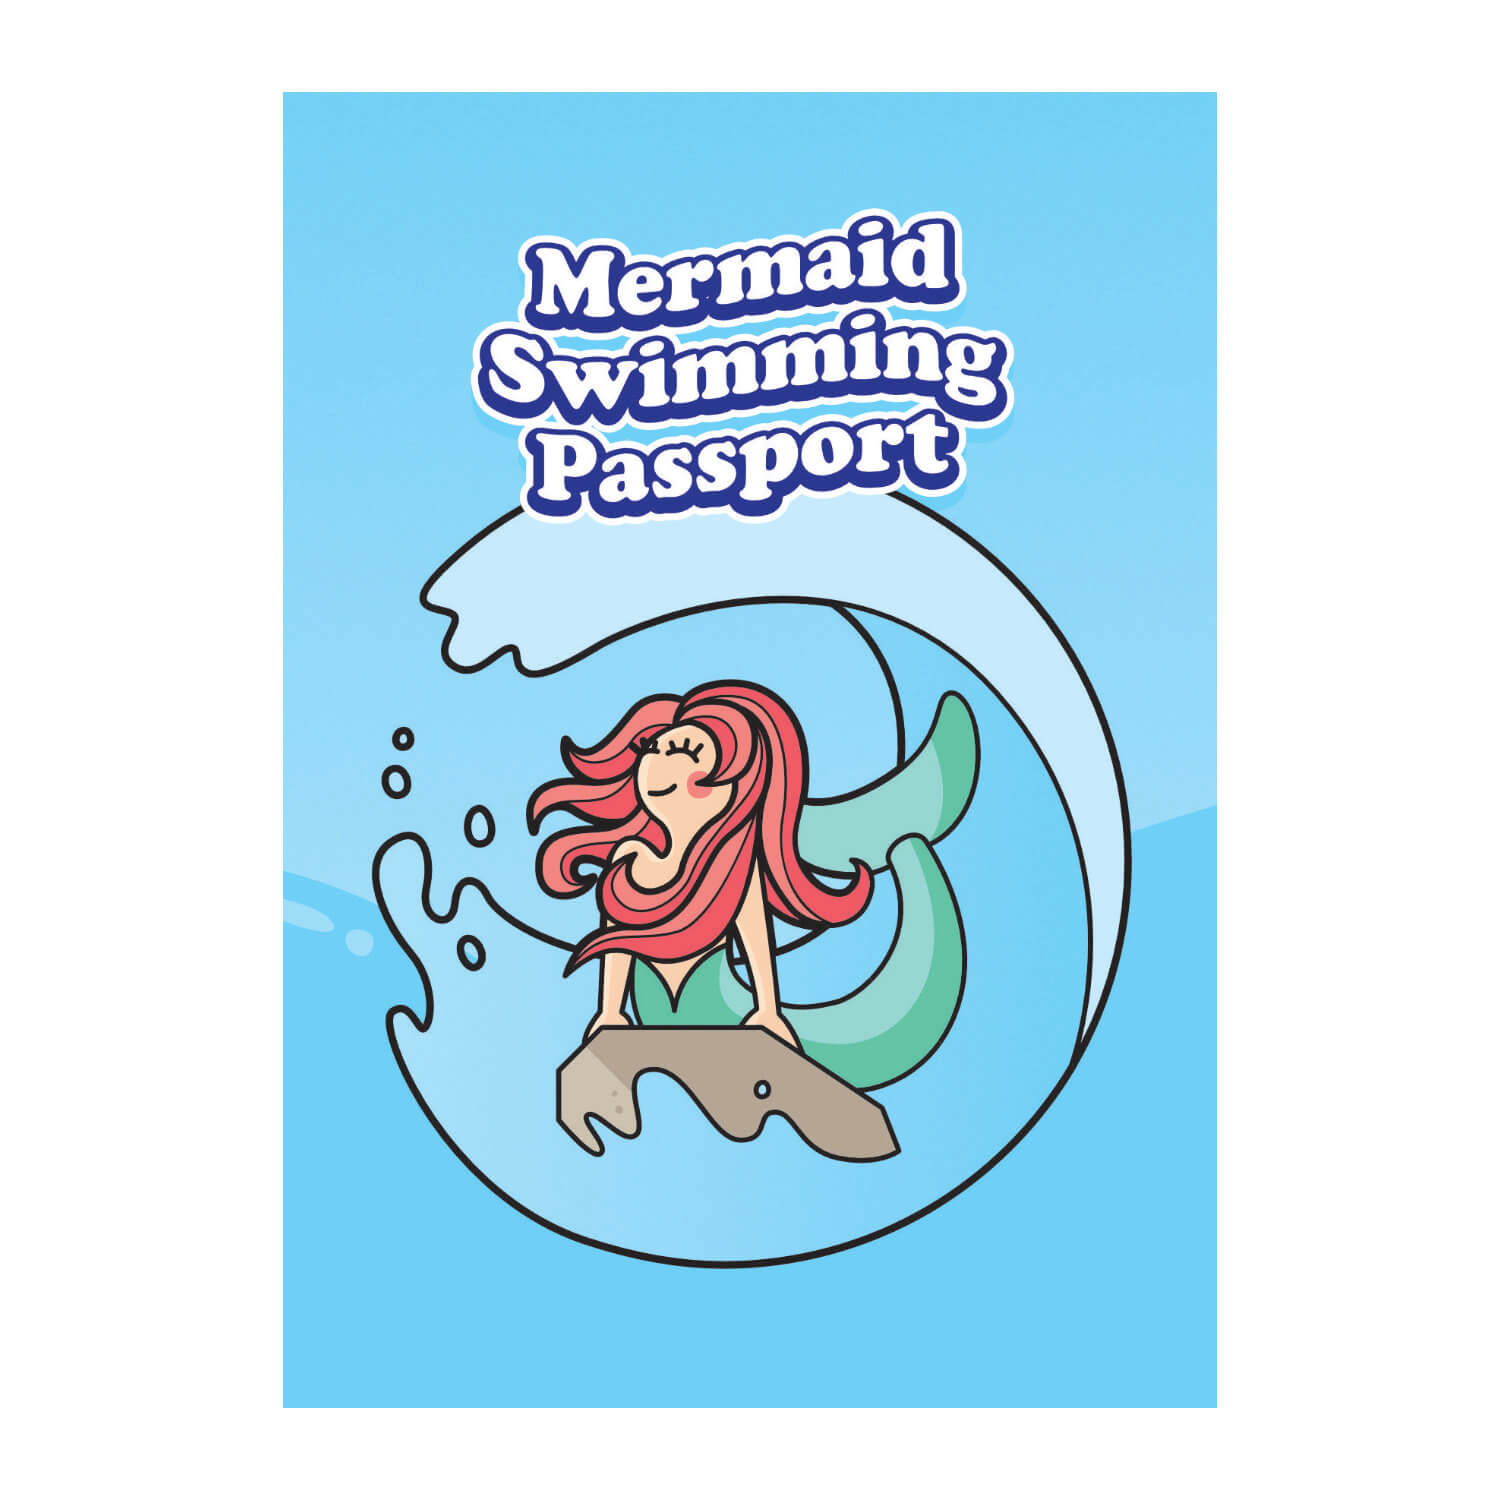 Mermaid Passport